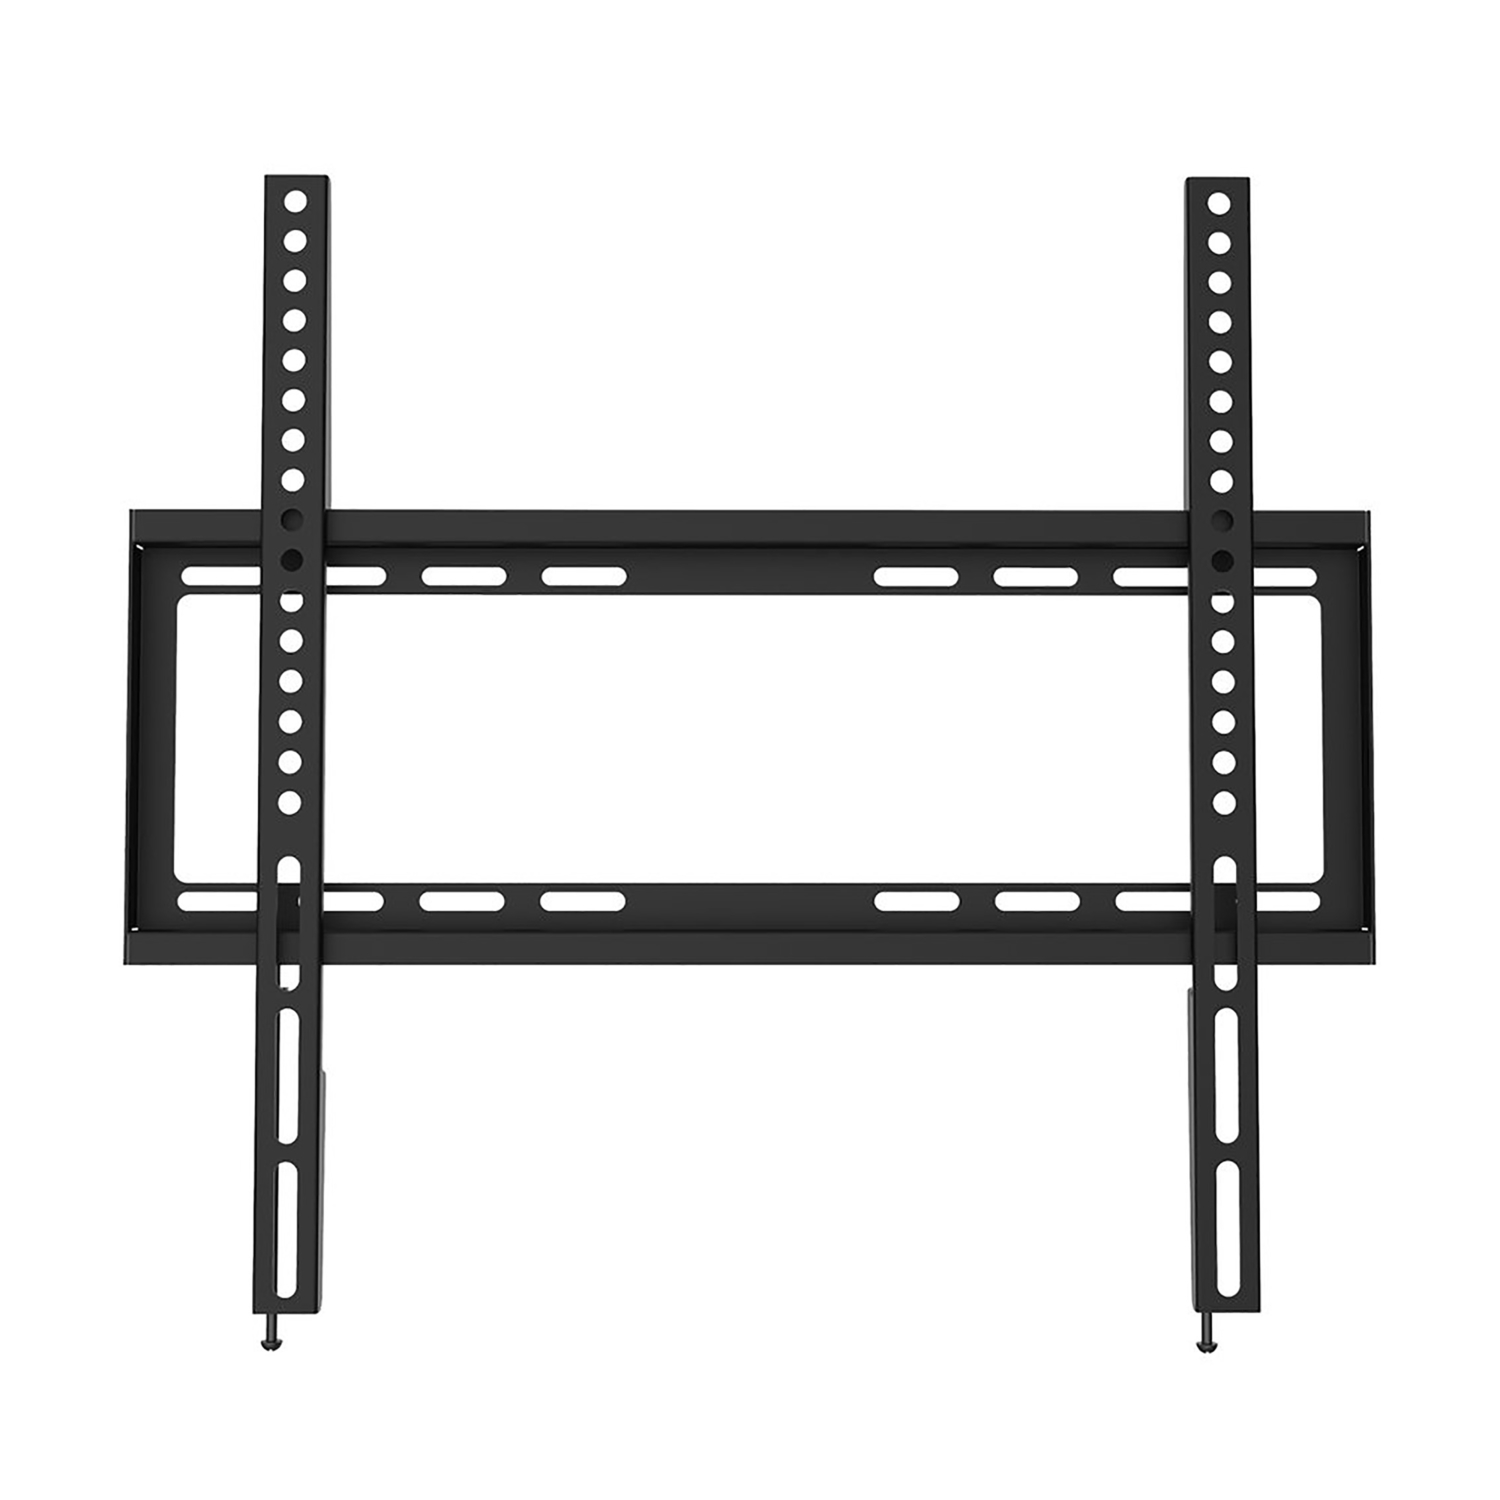 Monster Cable  Mounts  32 in. 60 in. 70 lb. Super Thin Fixed TV Wall Mount